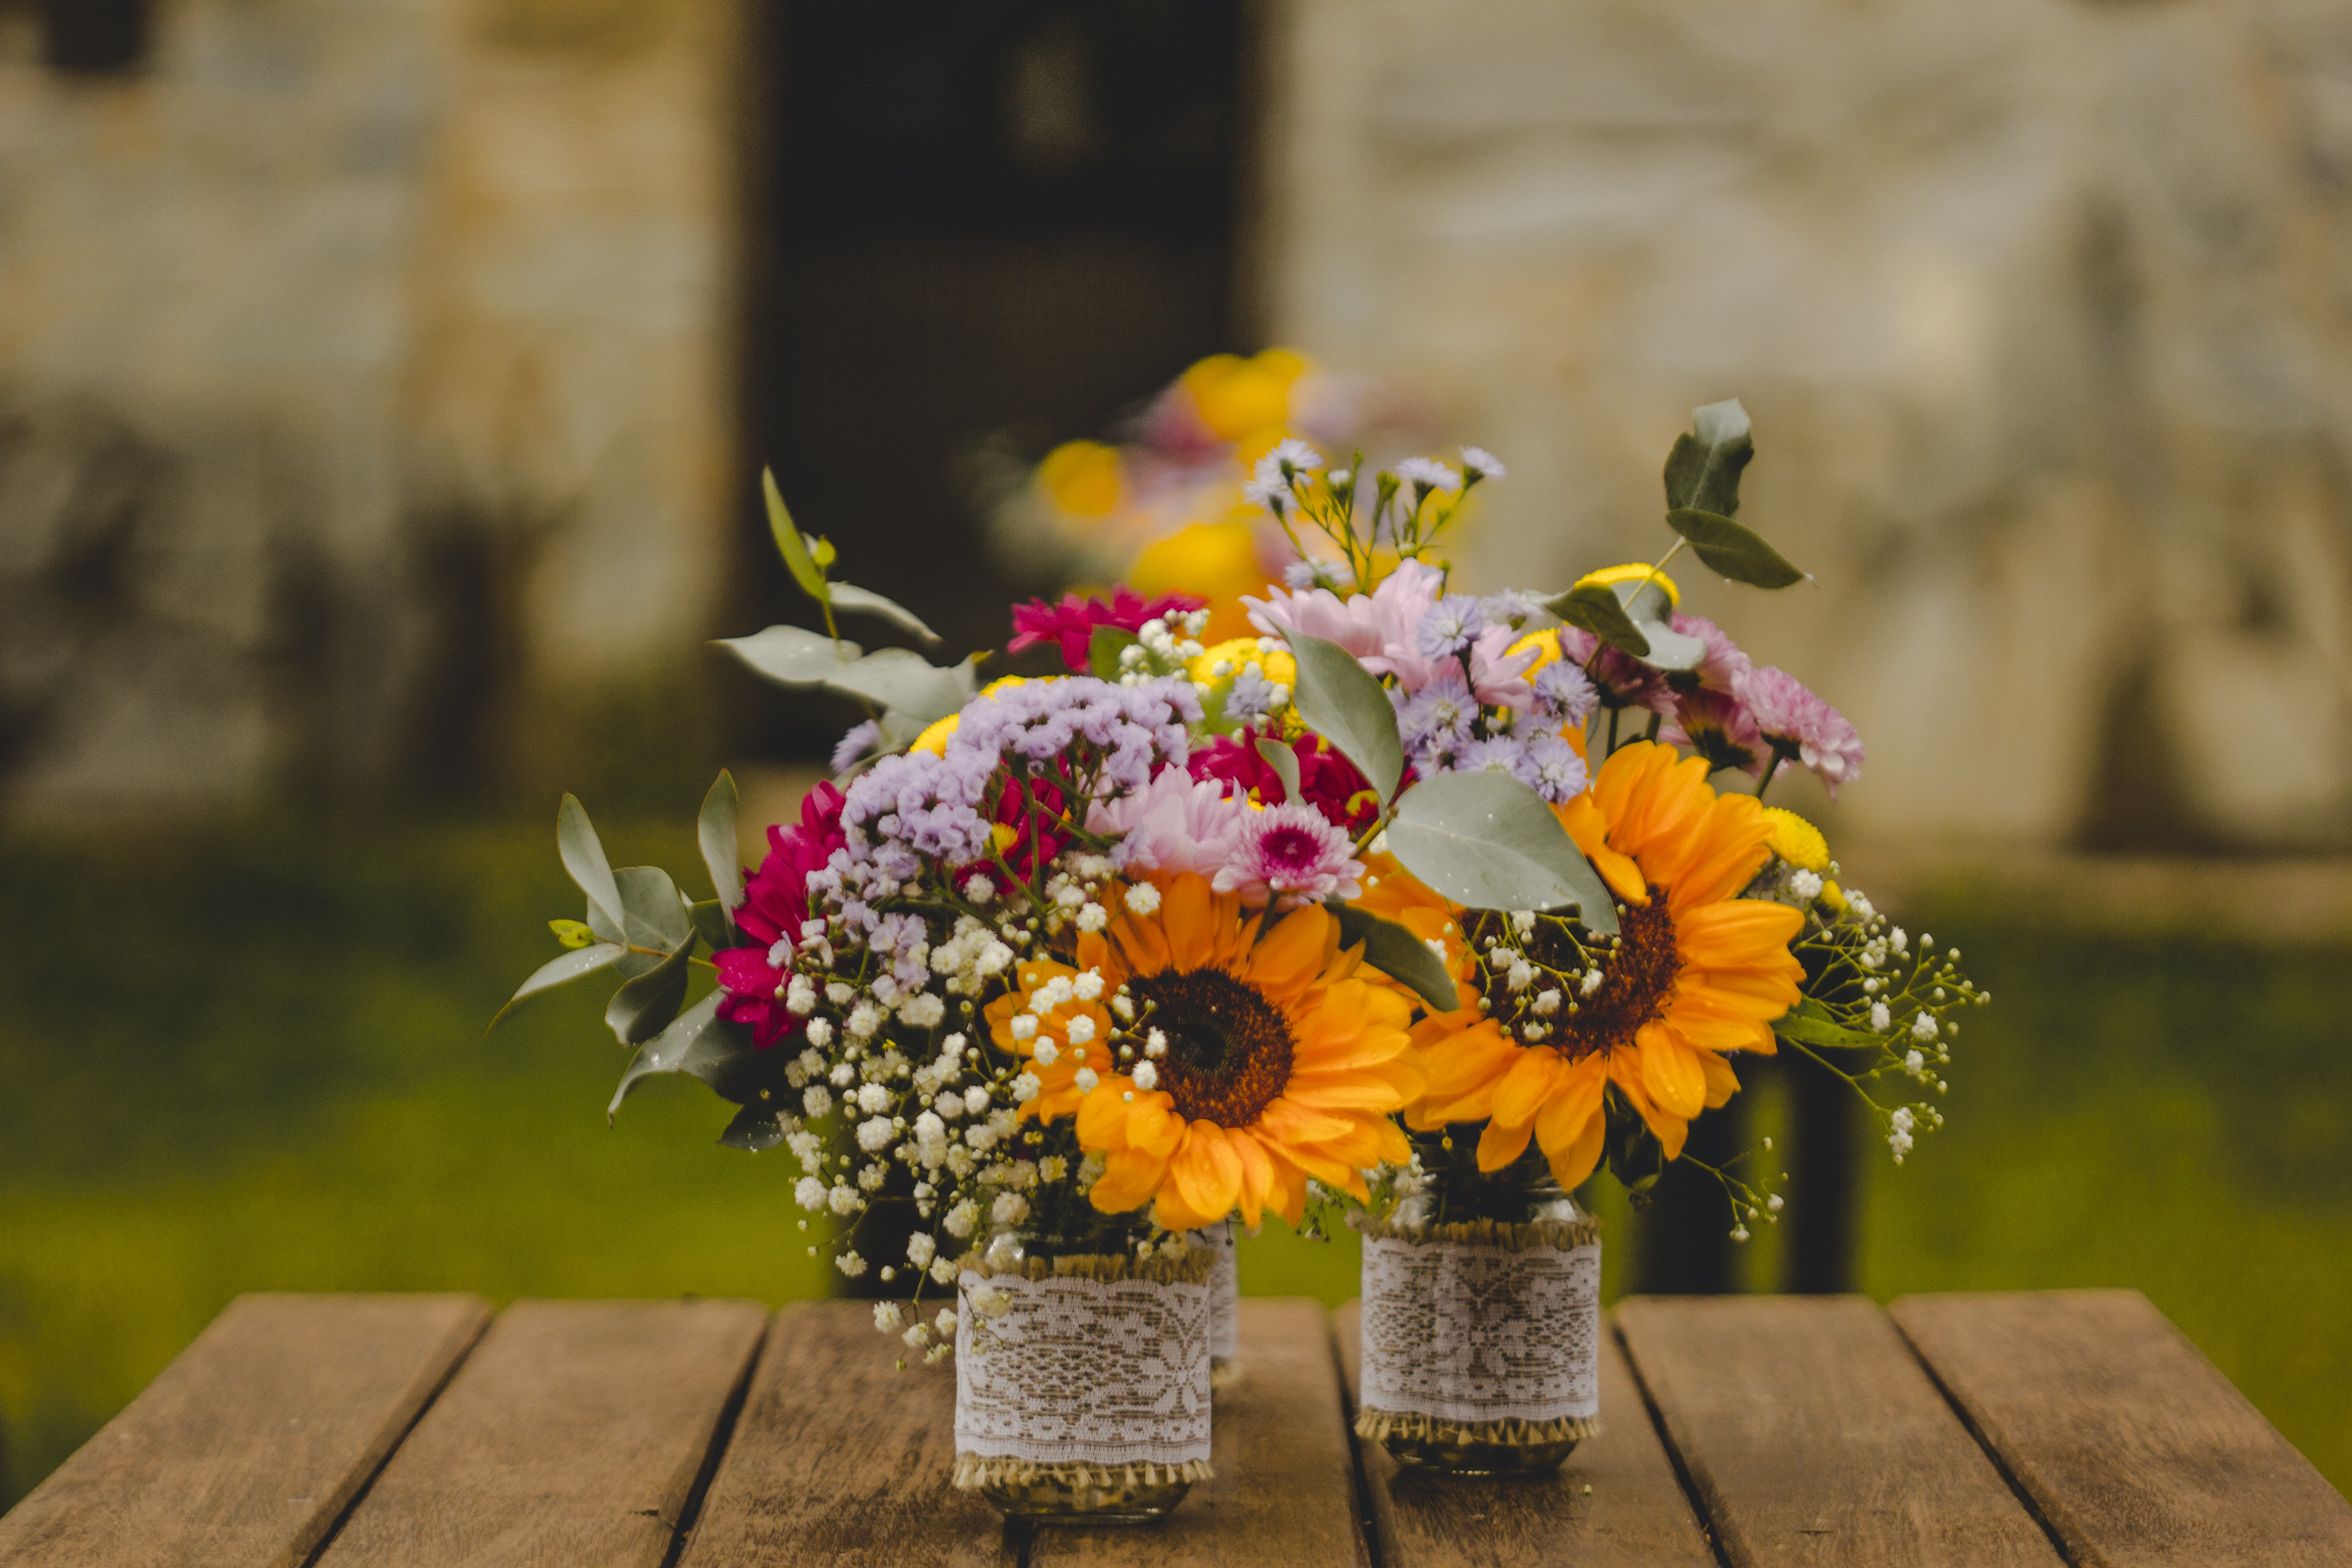 Two vases with collections of diverse flowers on a wooden table outdoors